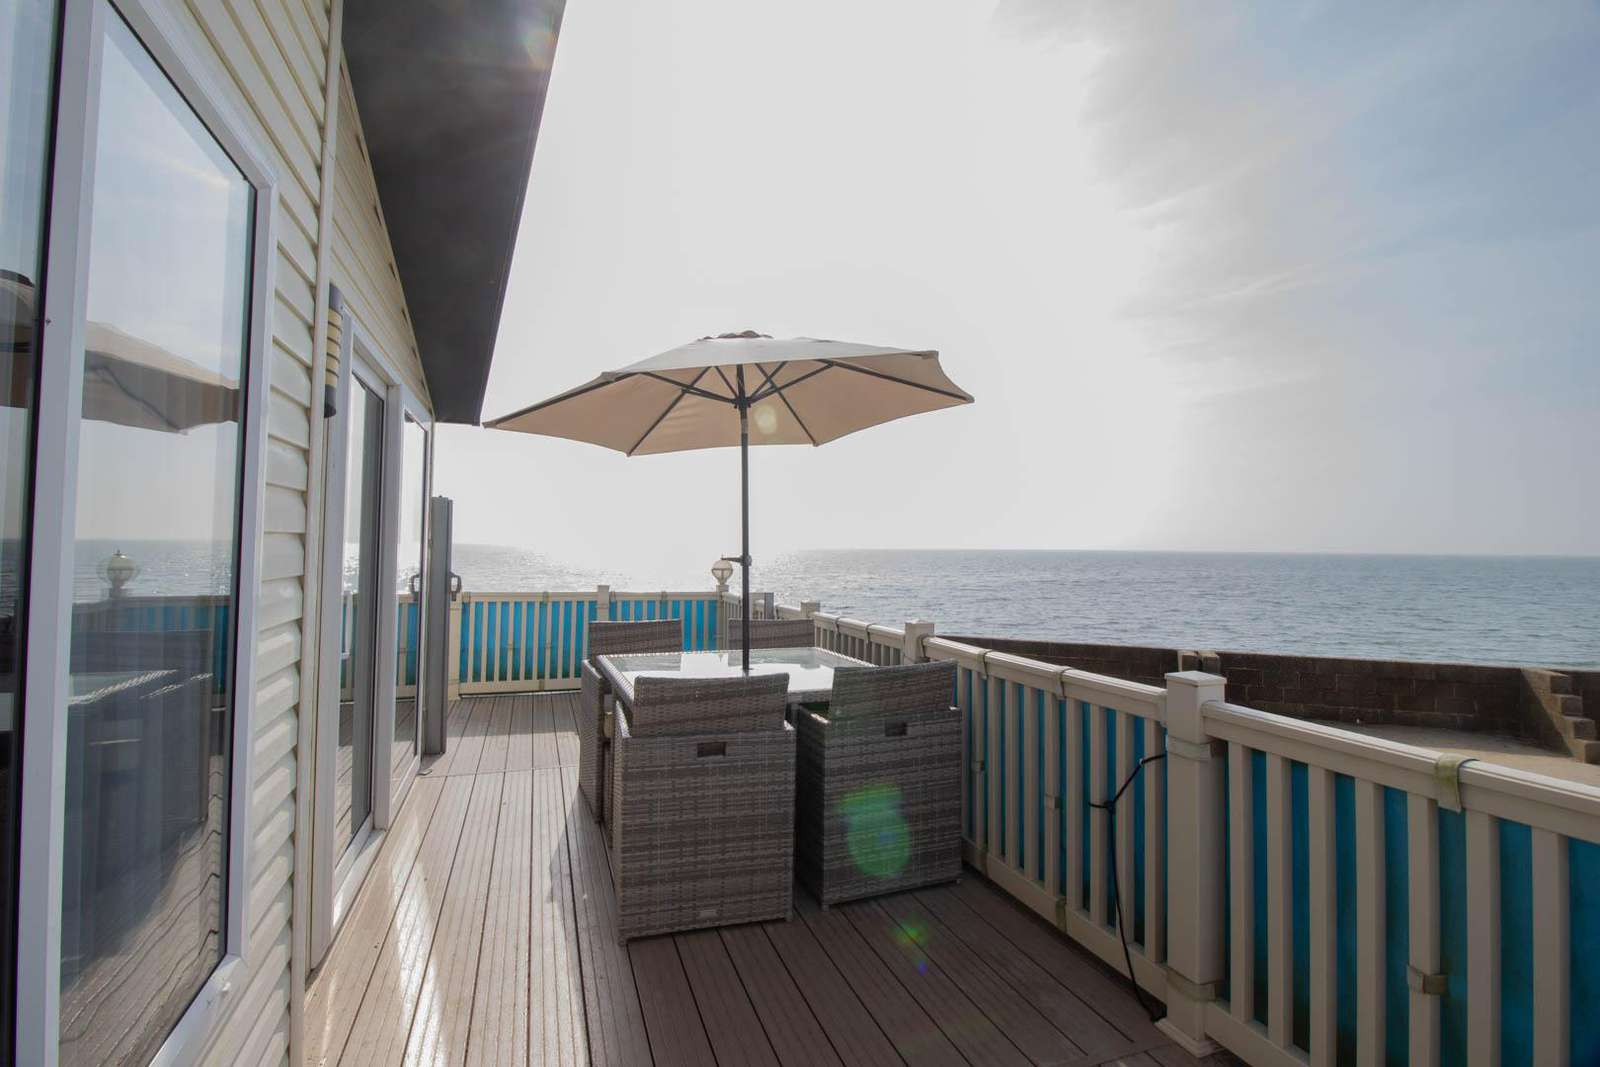 49019SV – Seashore View area, 3 bed, 8 berth lodge with full sea views. Platinum-Deluxe rated. - property